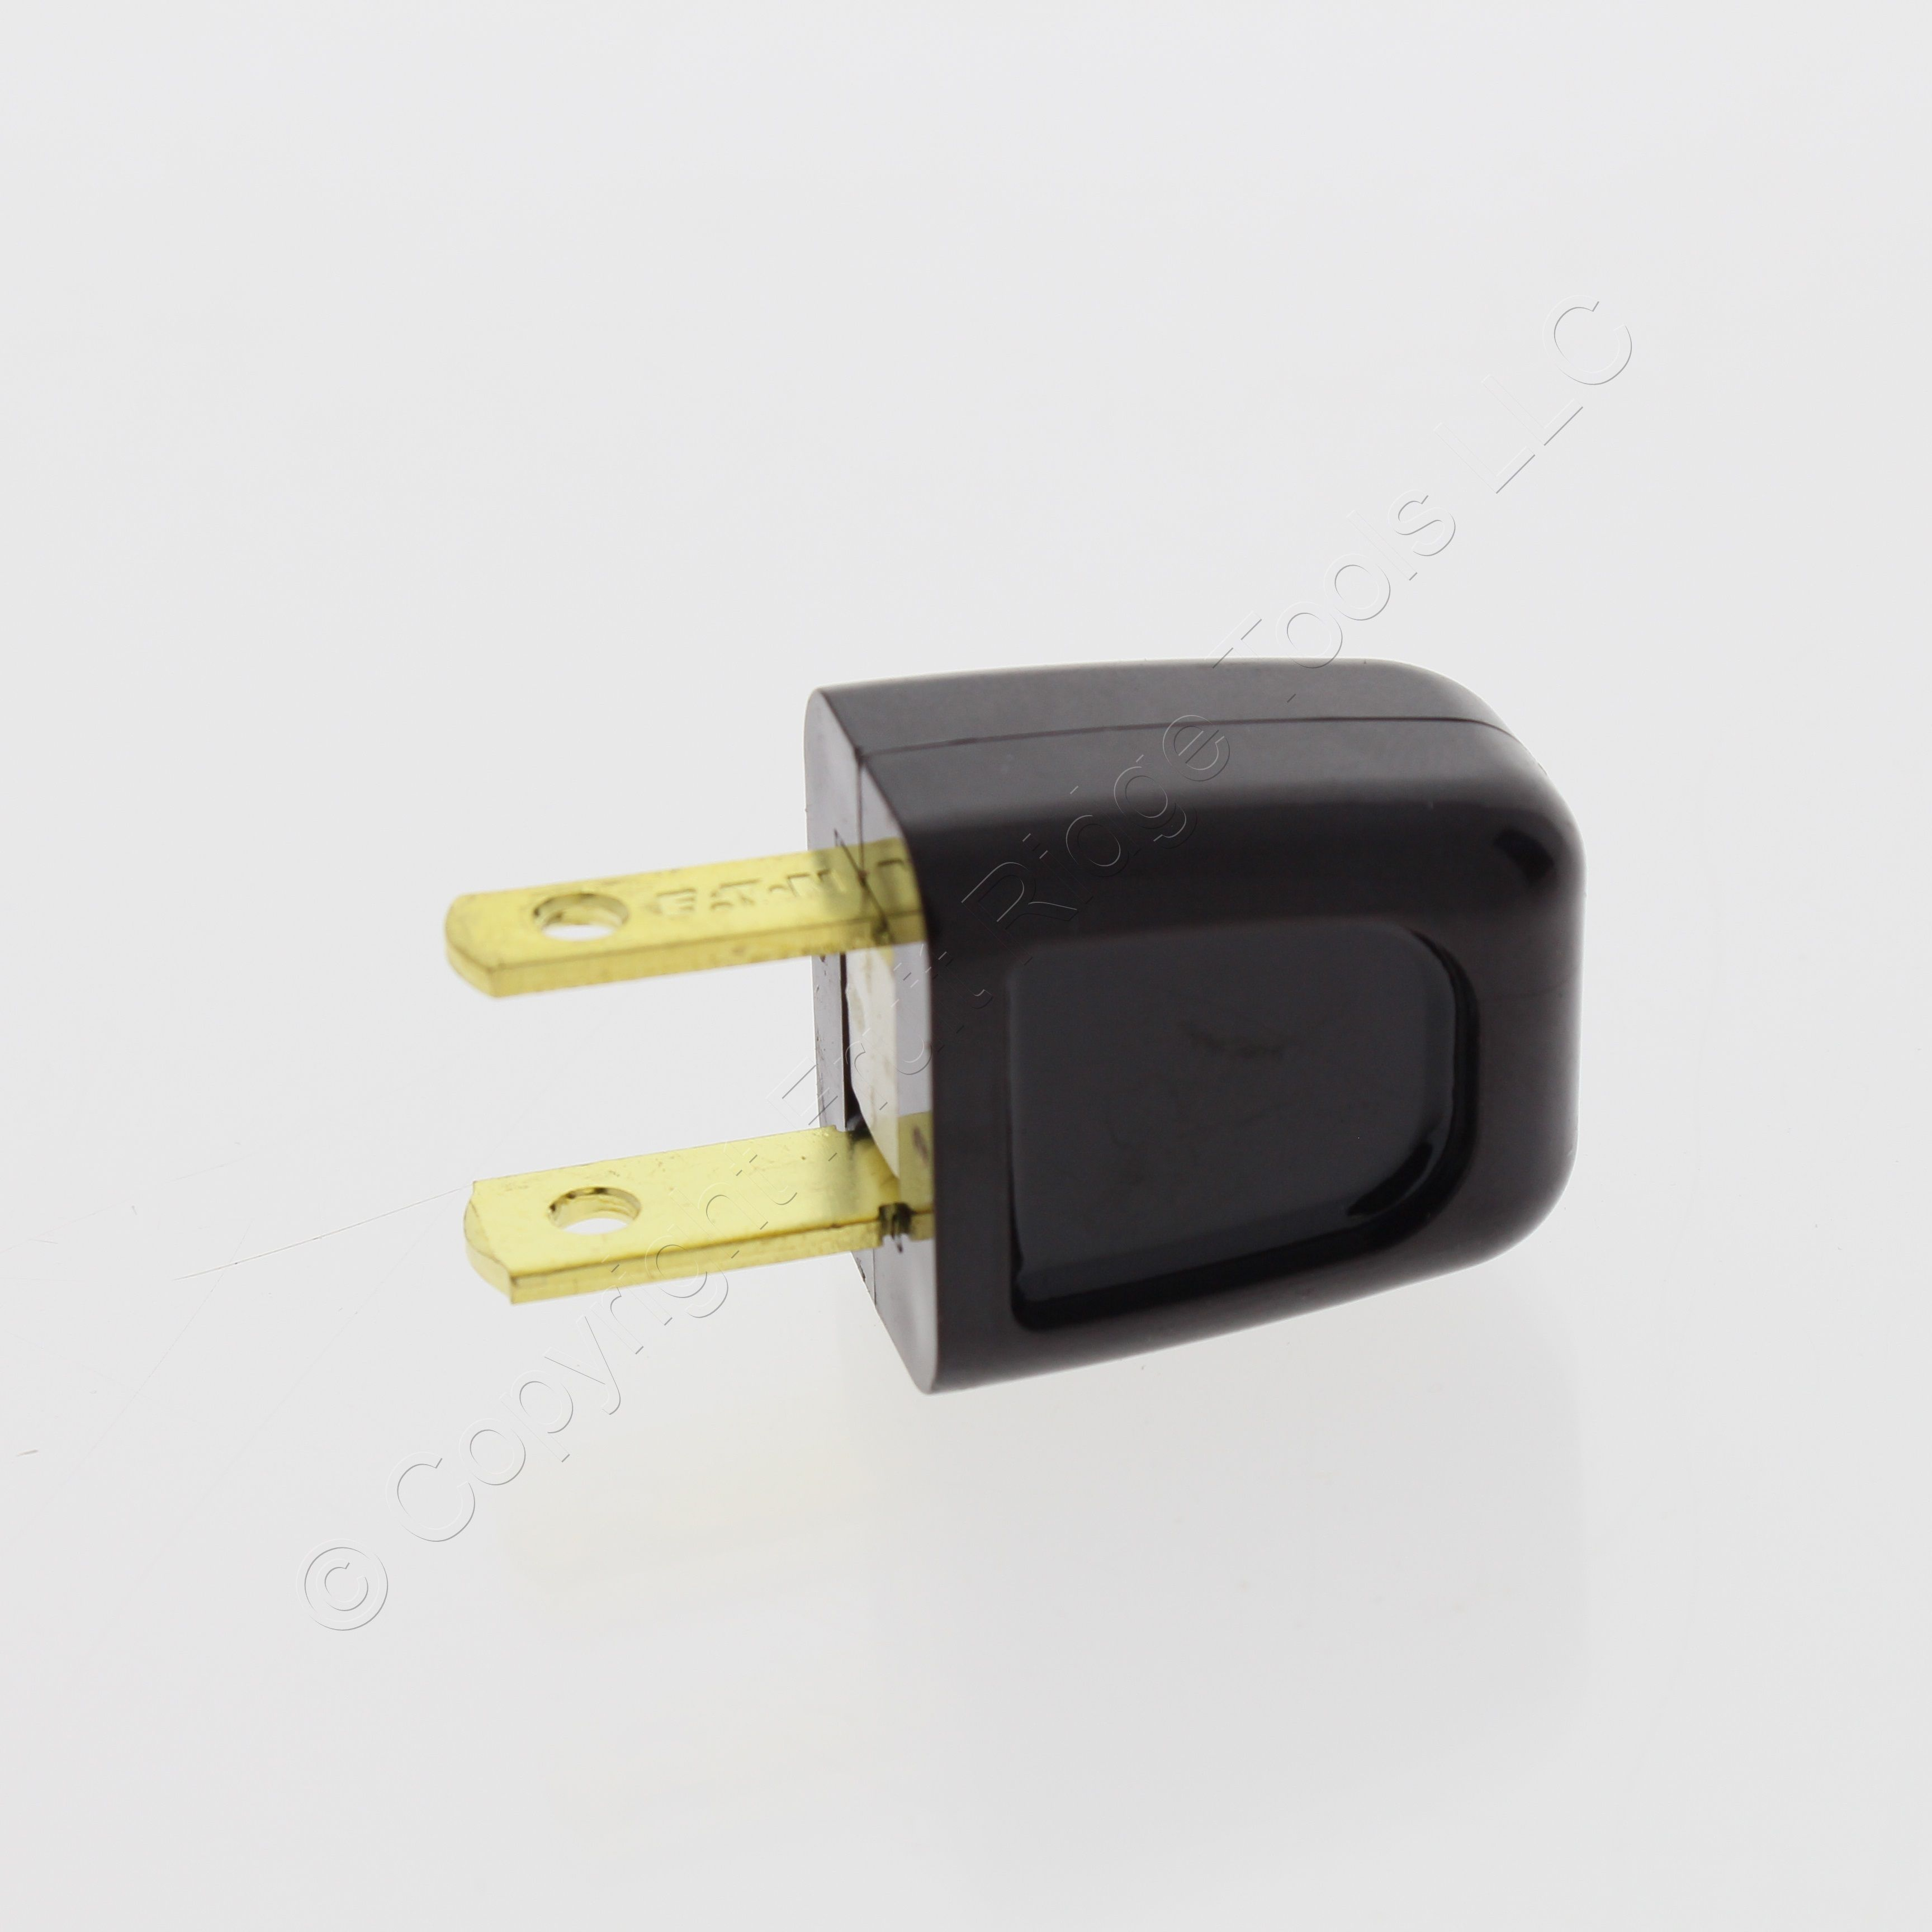 Cooper Brown Easy Install Plug 10A 125V Non-Polarized Non-Grounding 18-2 SPT-1 NEMA 1-15P BP2601B